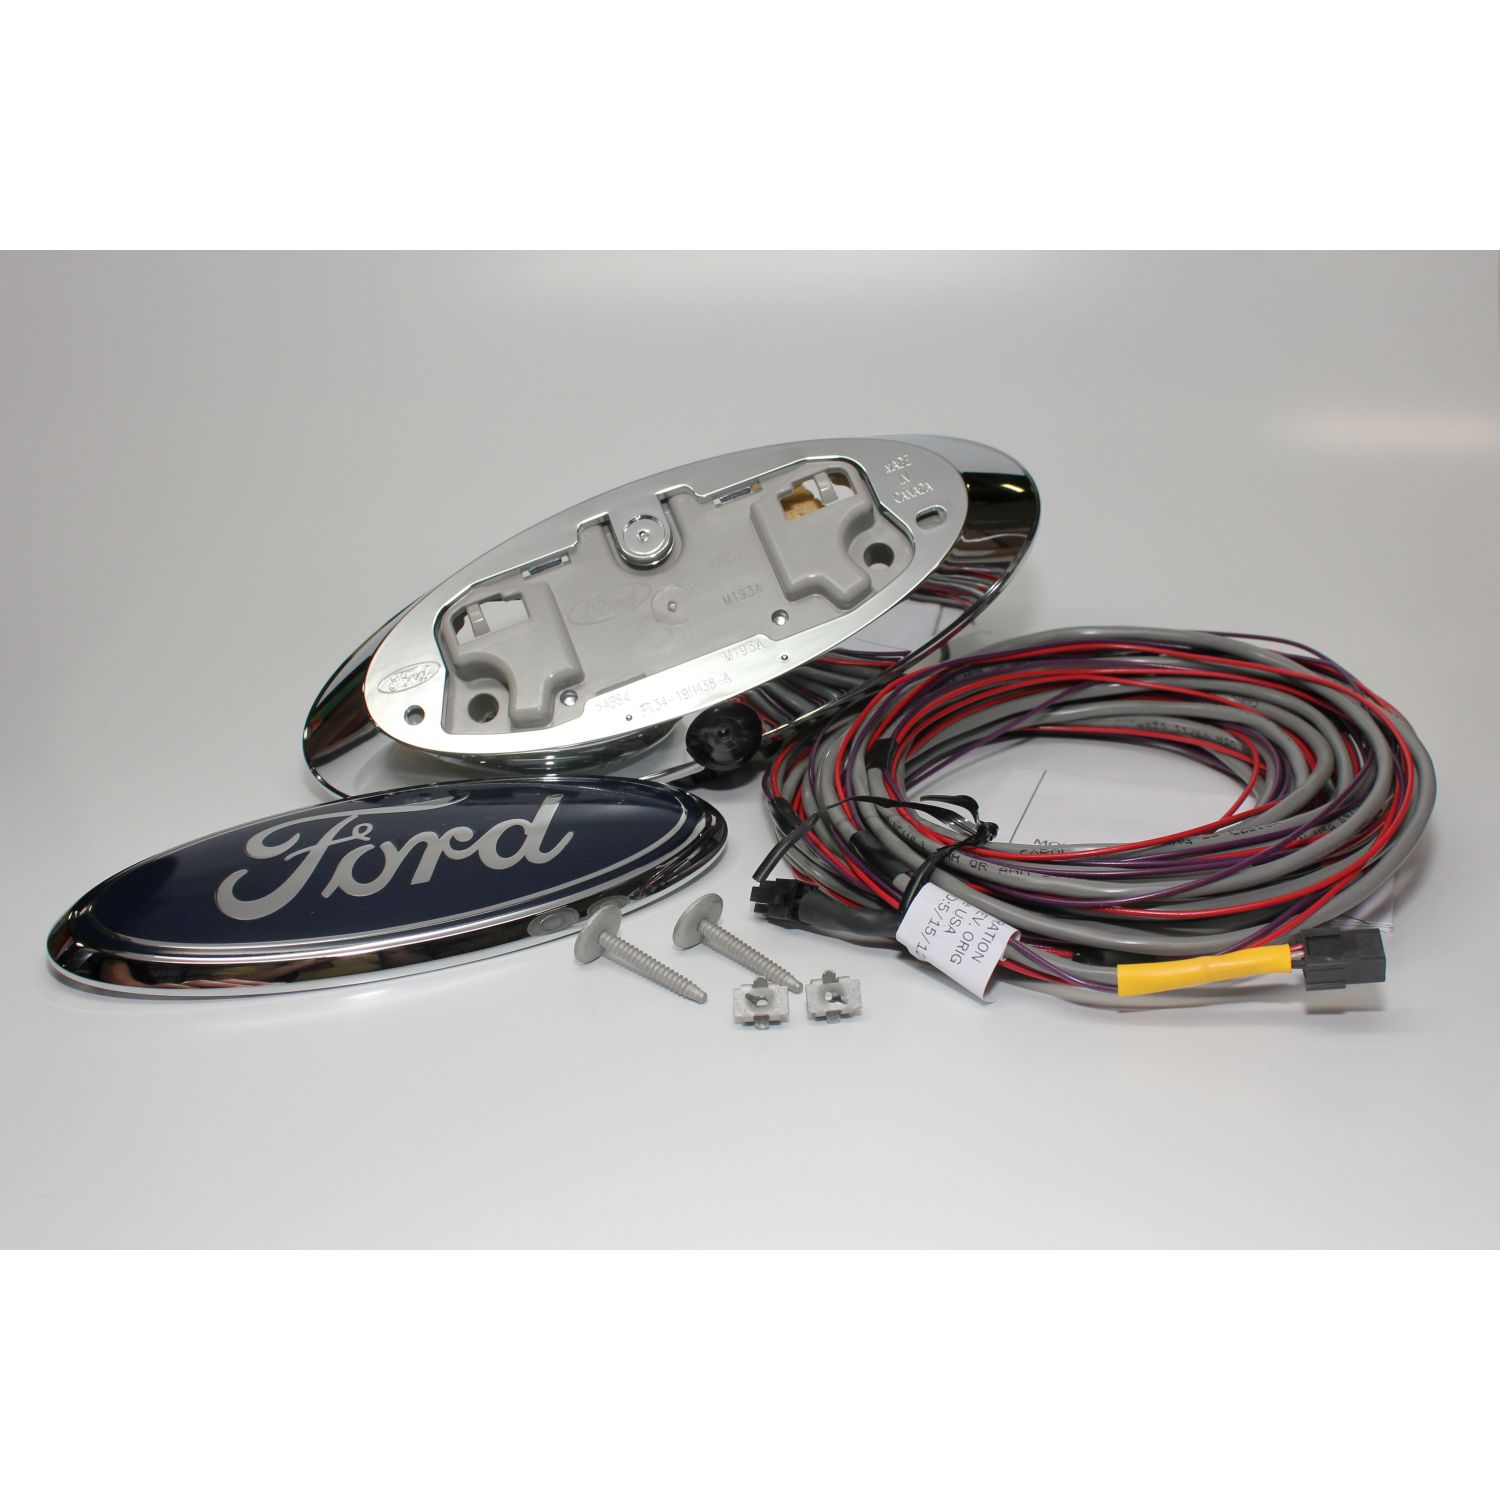 Mito Auto ® - Ford Emblem Camera With 28 Feet Harness And Guidelines Wire Harnesses Being Emblem on